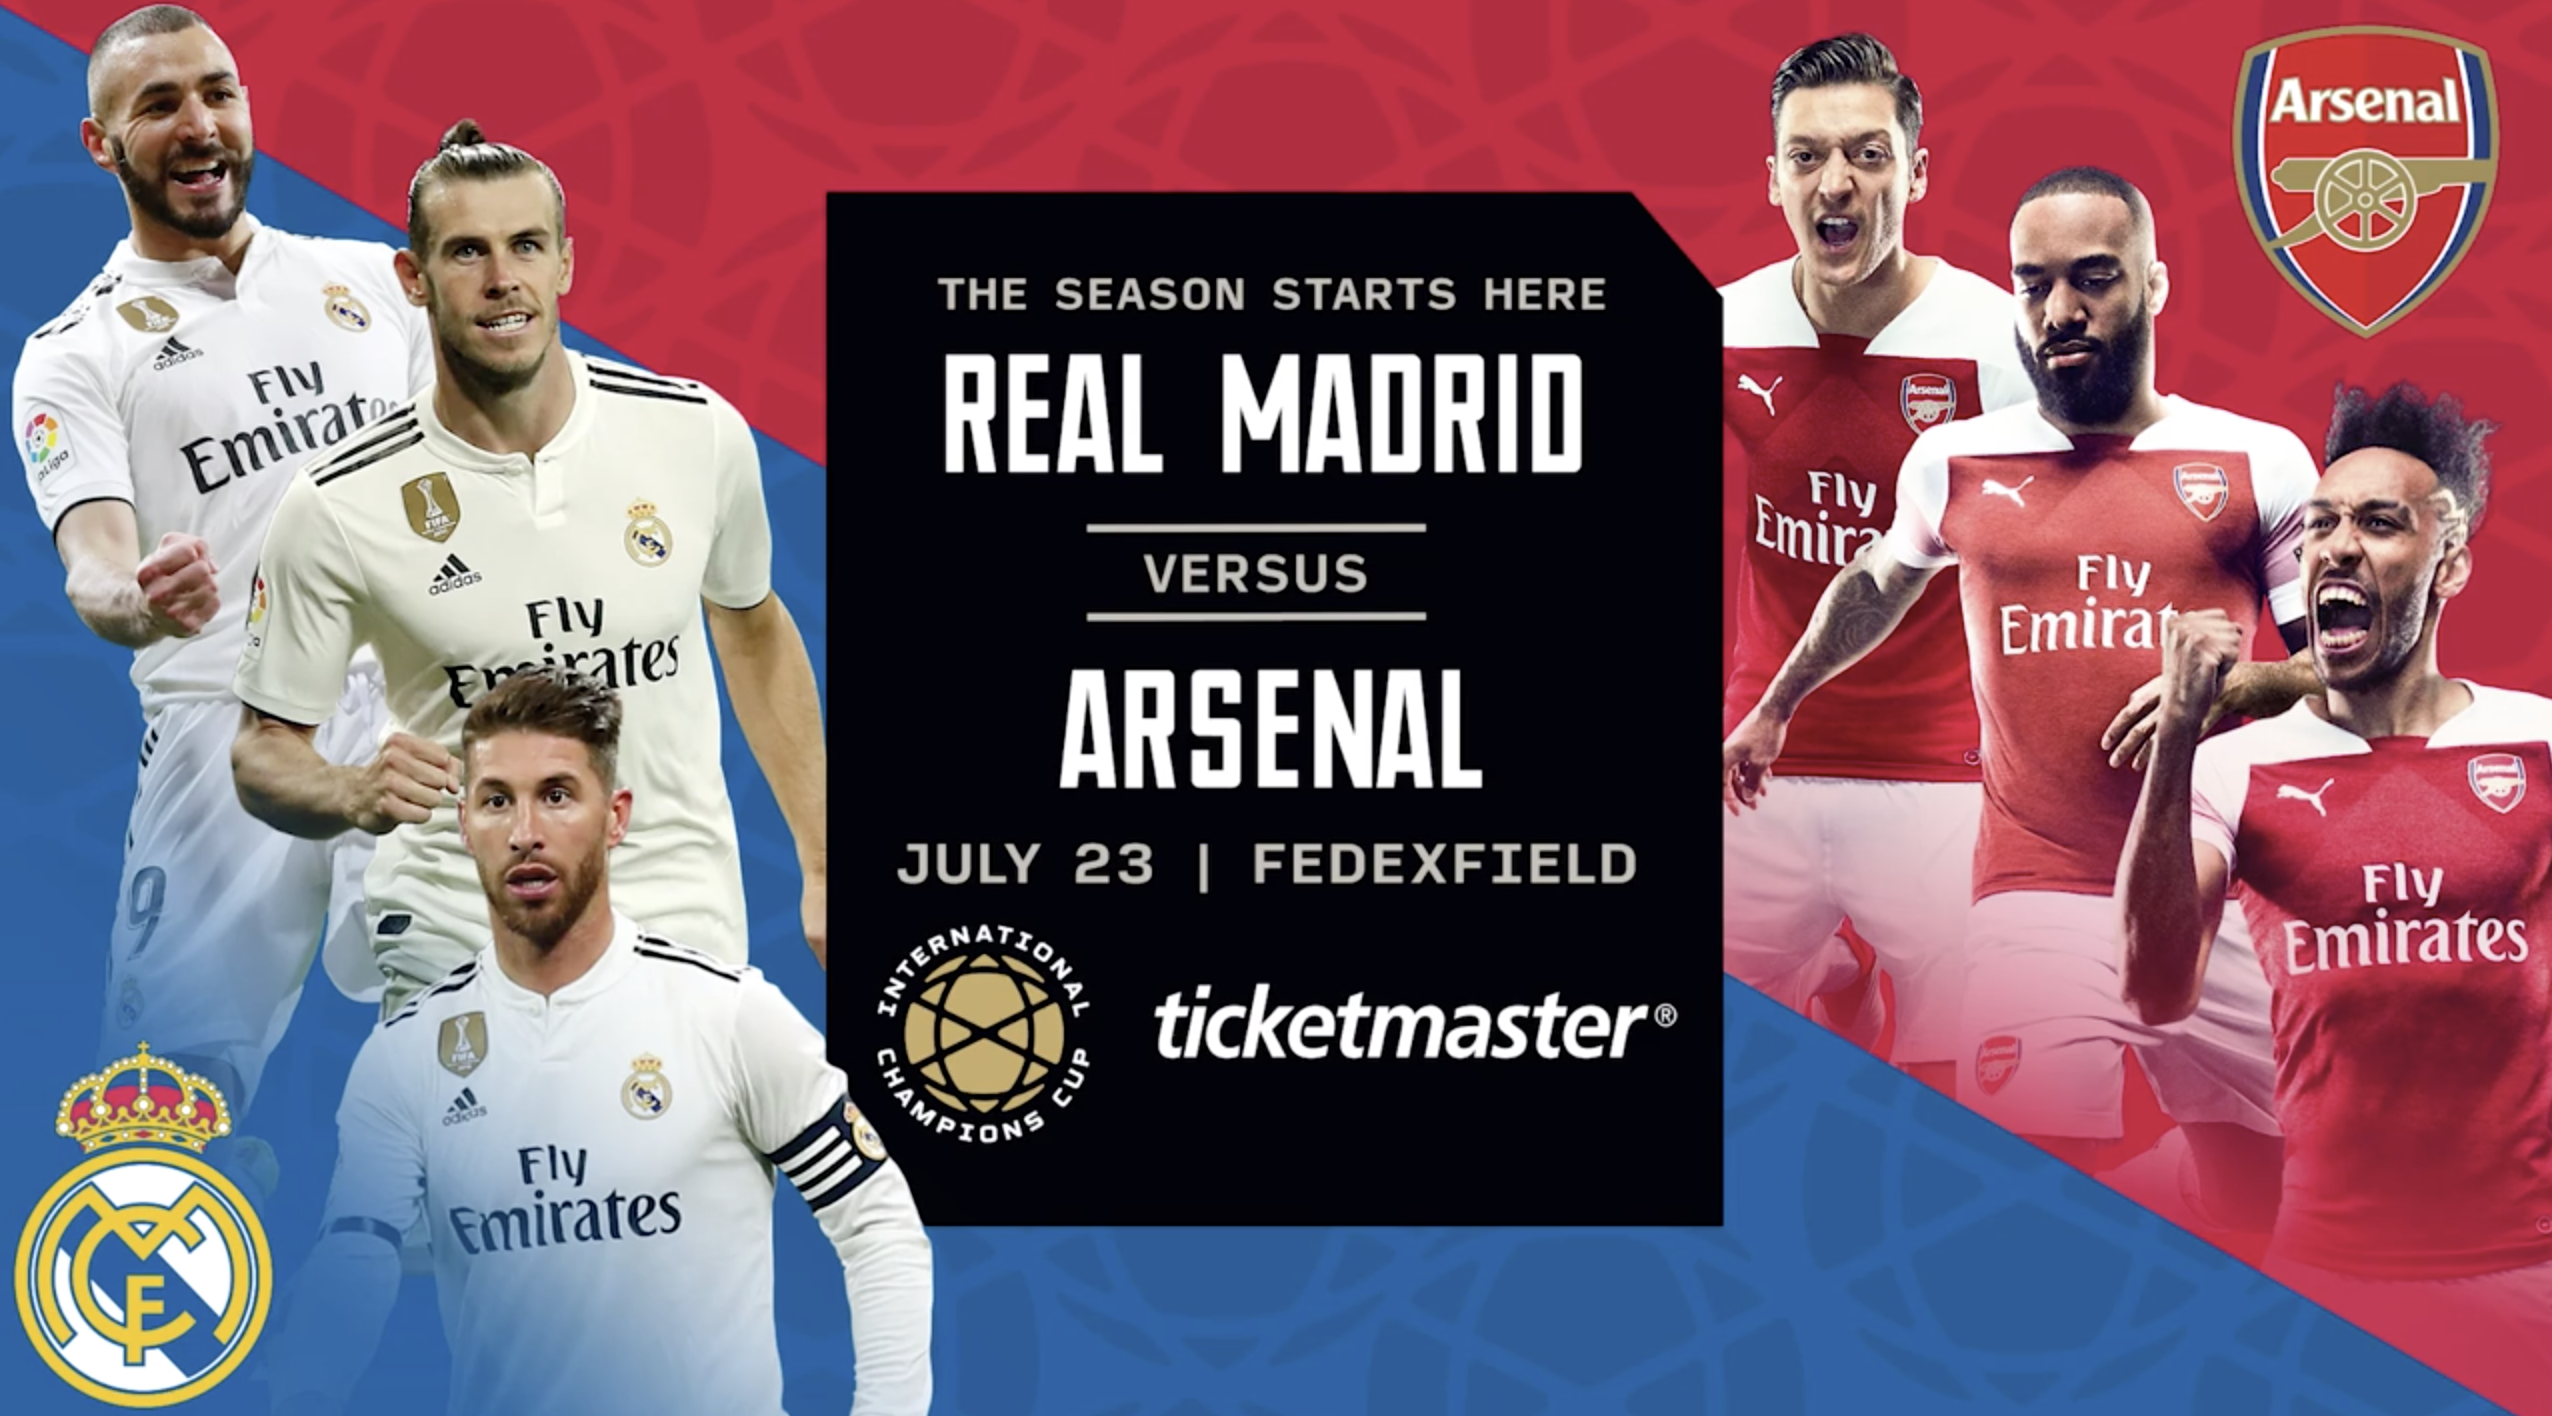 Real Madrid versus Arsenal playing at the FEDEX Field in Washington, DC on July 23, 2019 during the International Champions Cup 2019